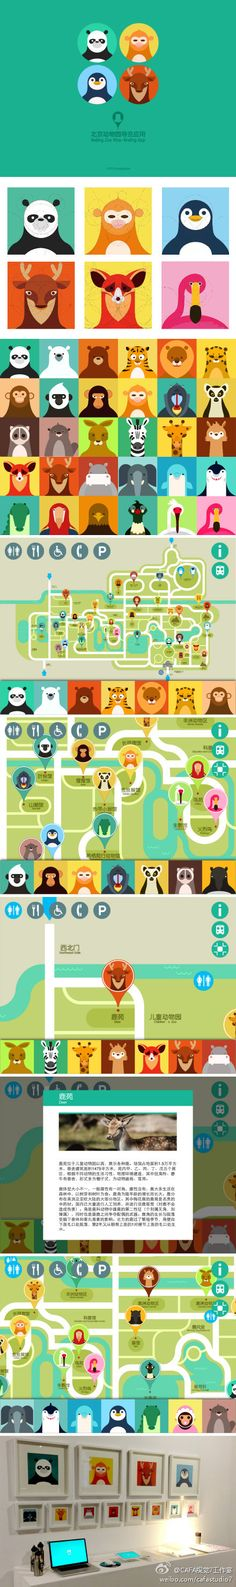 "Graduate design [7] ""Beijing Zoo navigation application ... @ pockyday collected favorite icon (Figure 17) _ petals UI design"